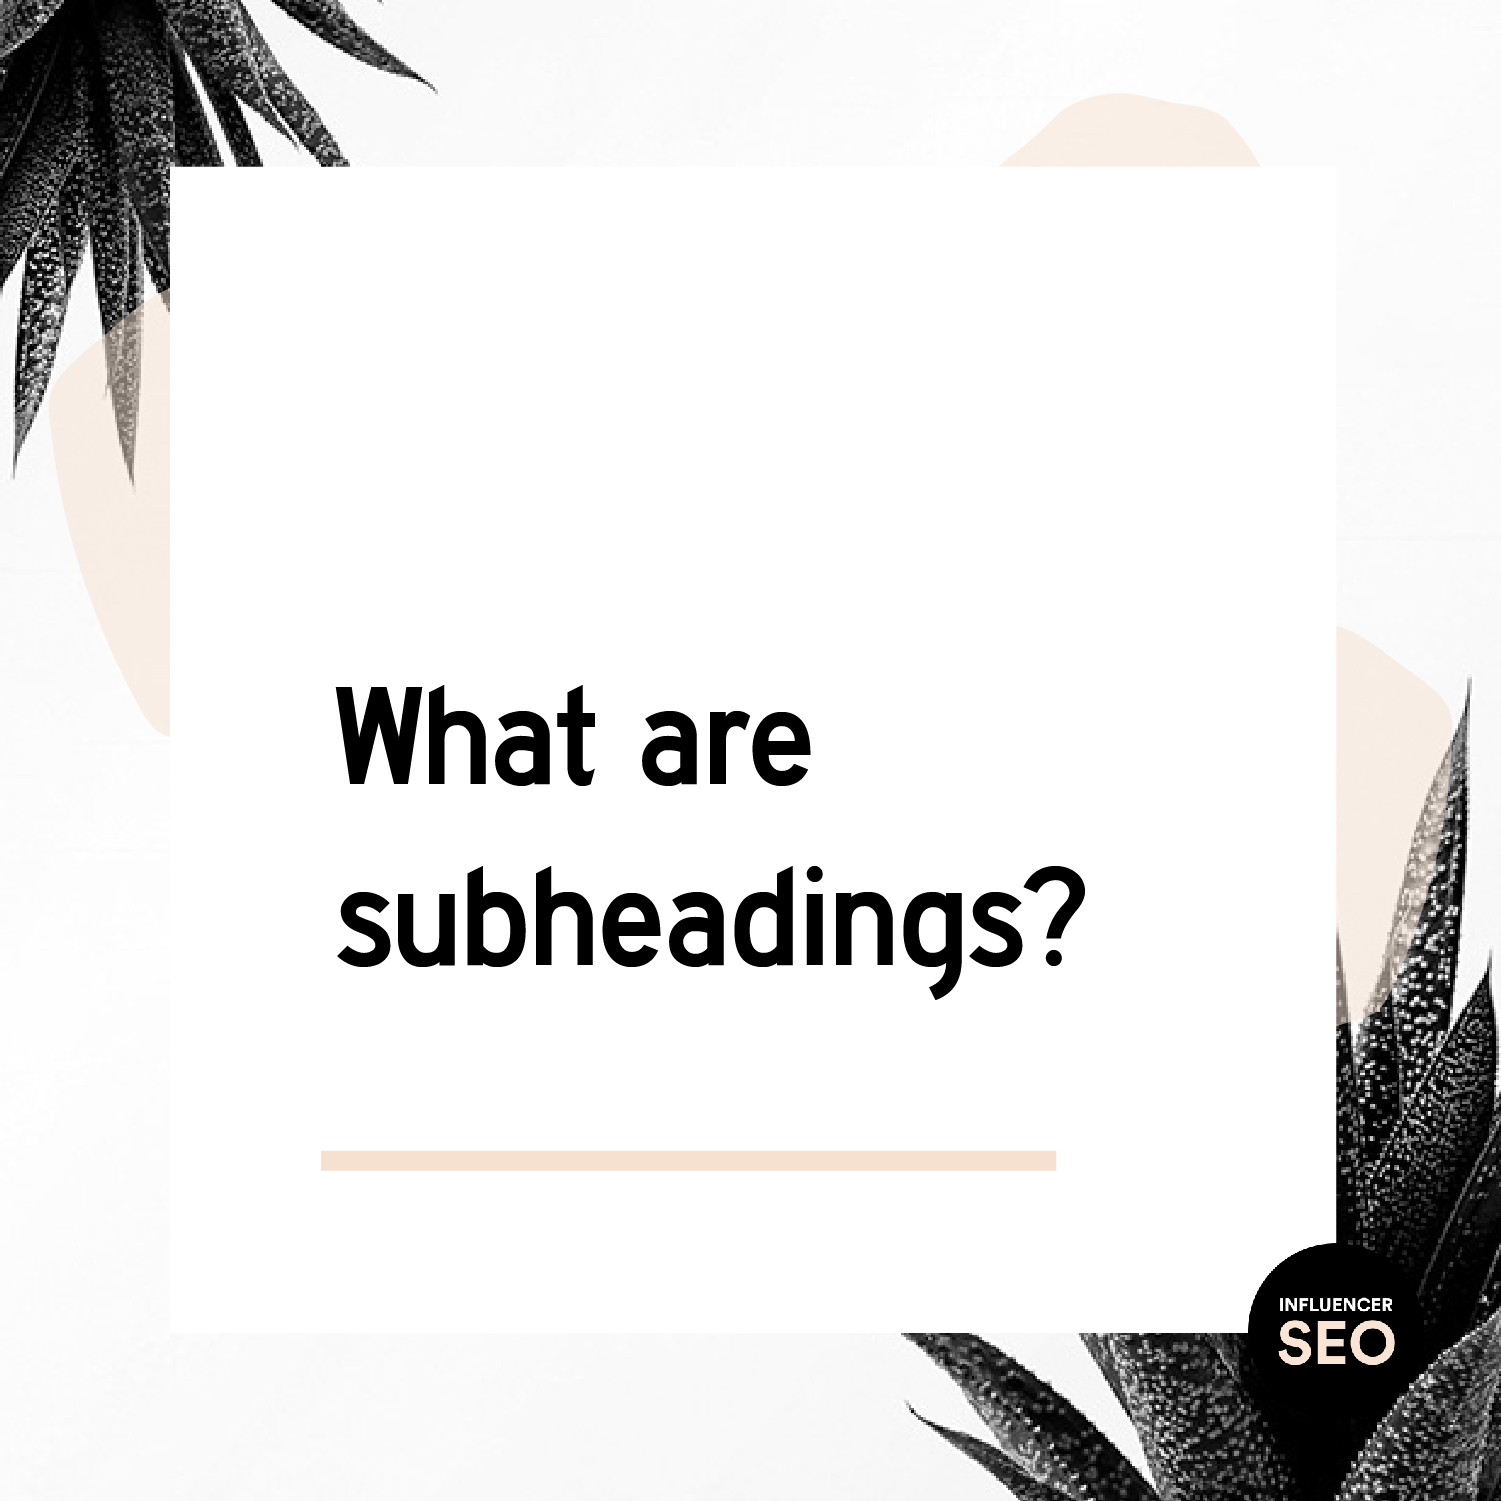 what are subheadings in SEO